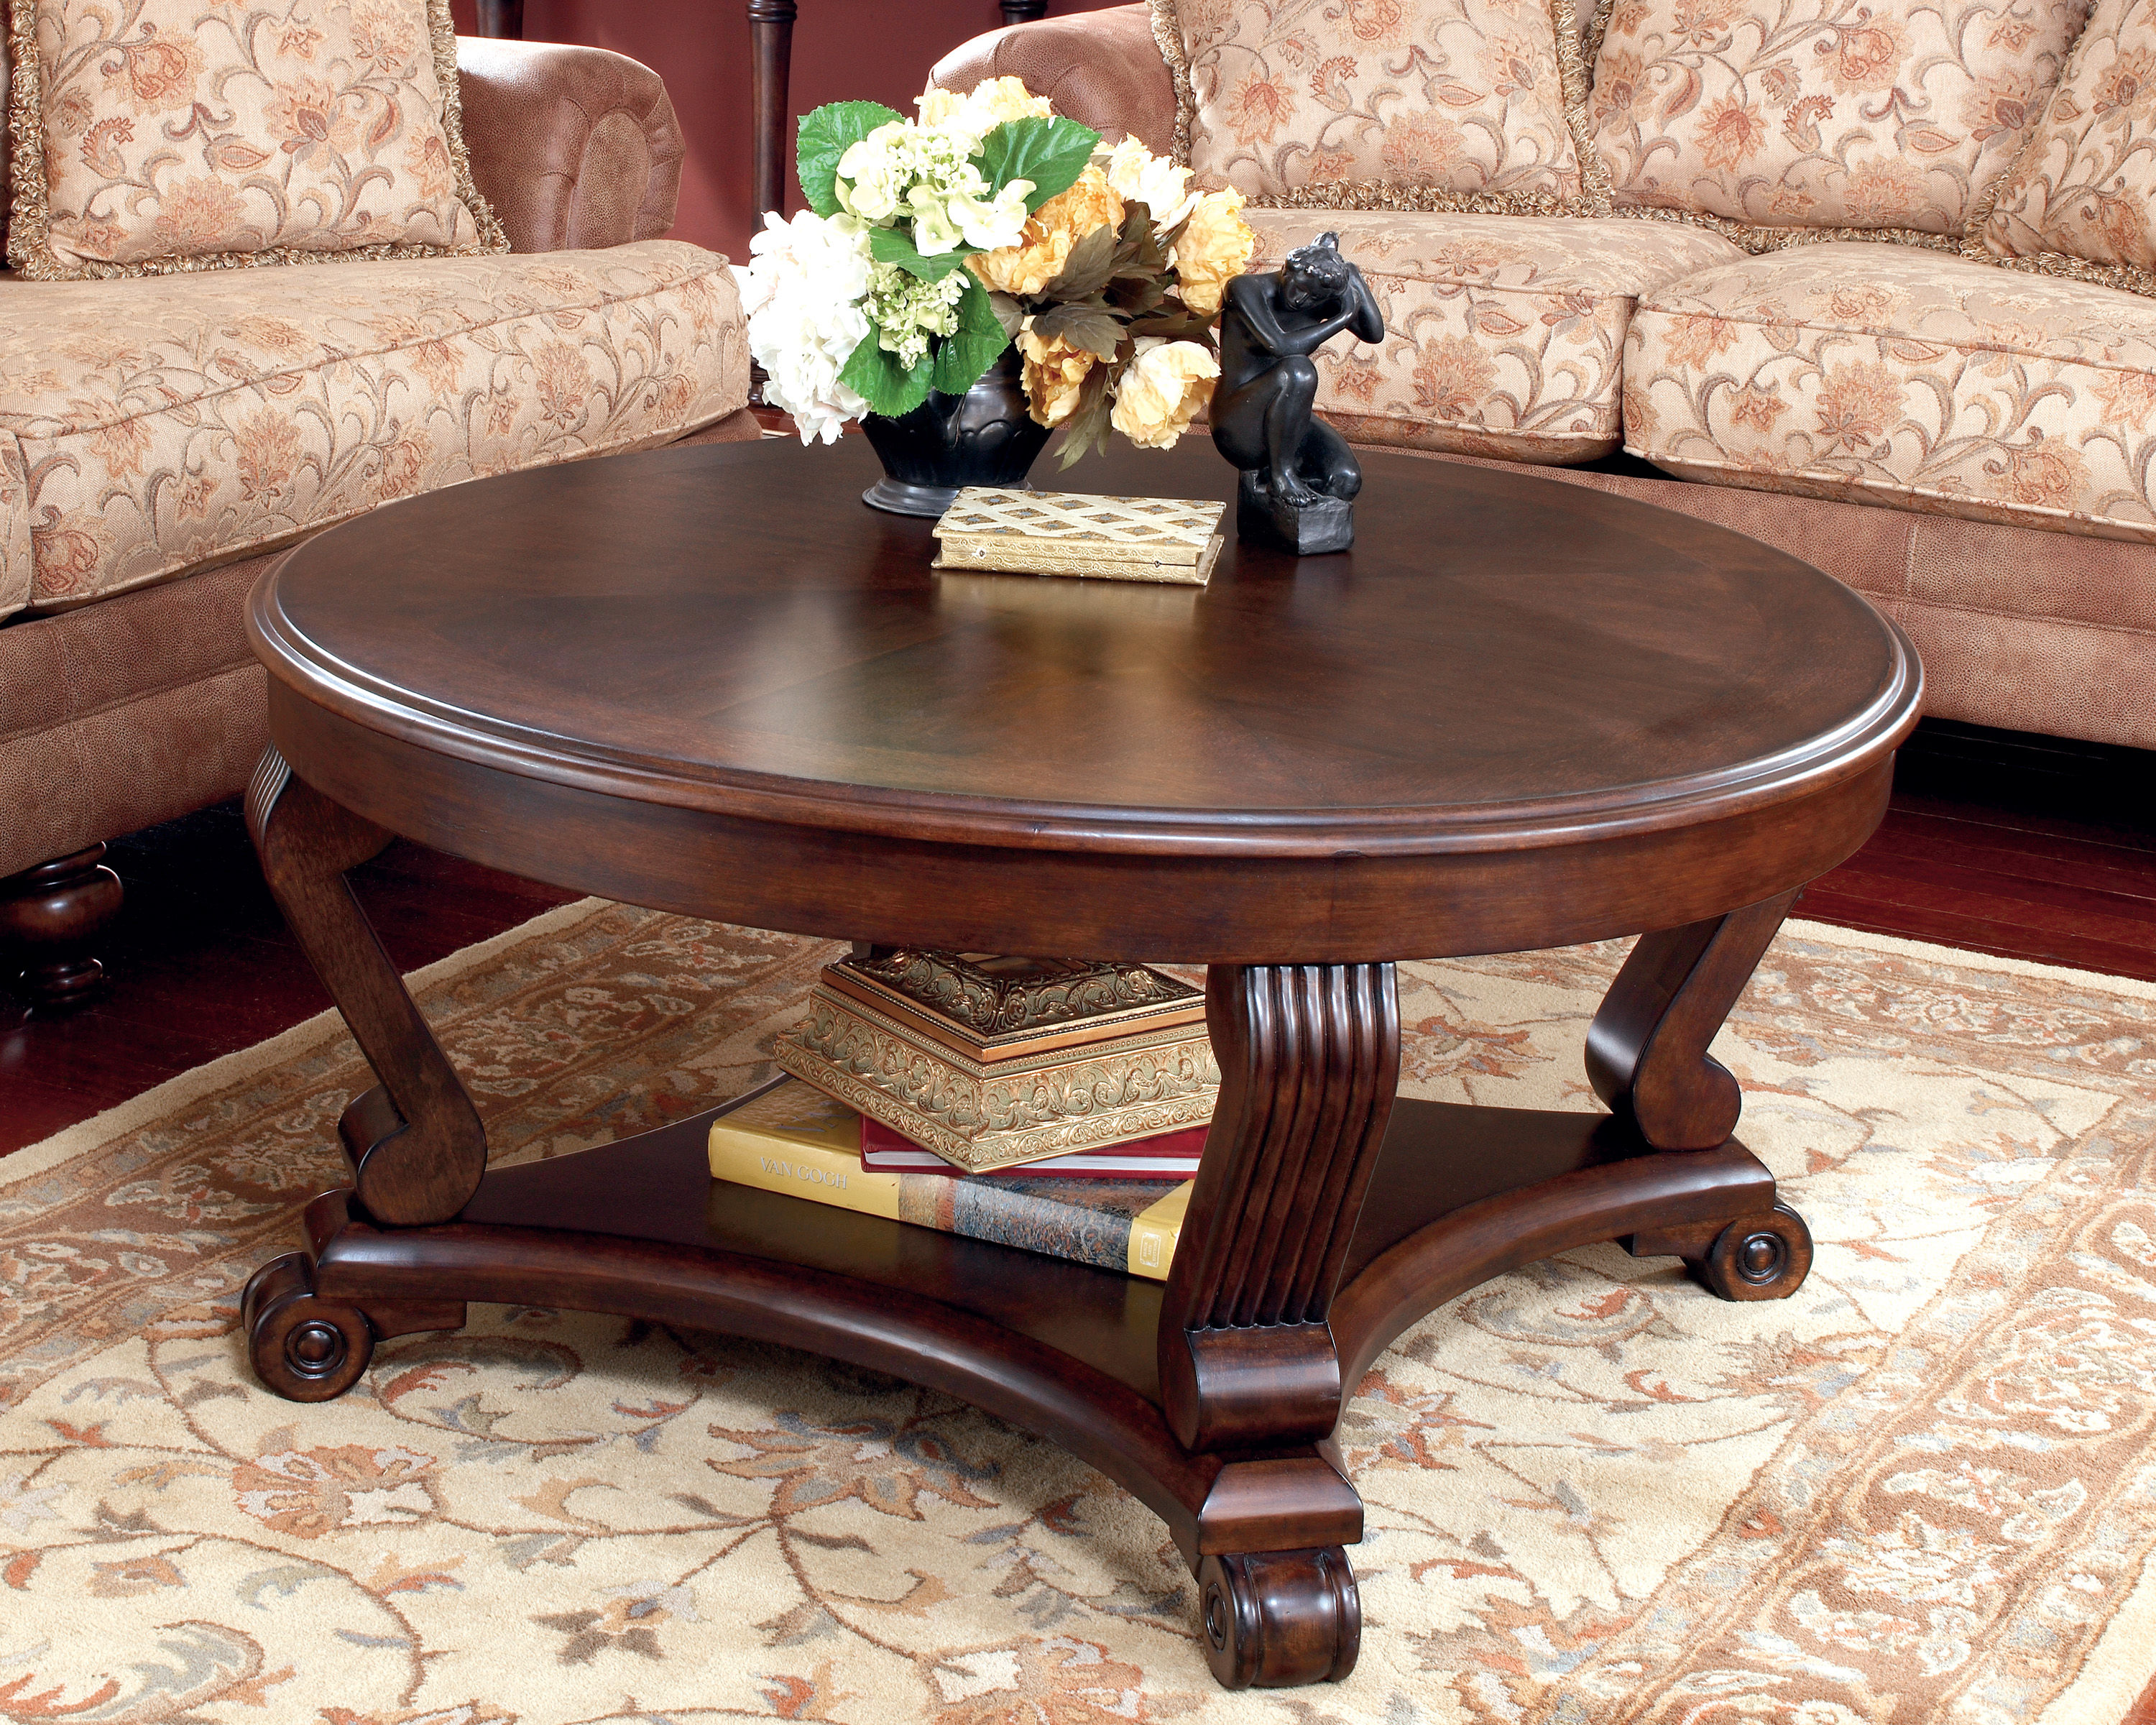 10 Best Round Coffee Table and End Tables Sets